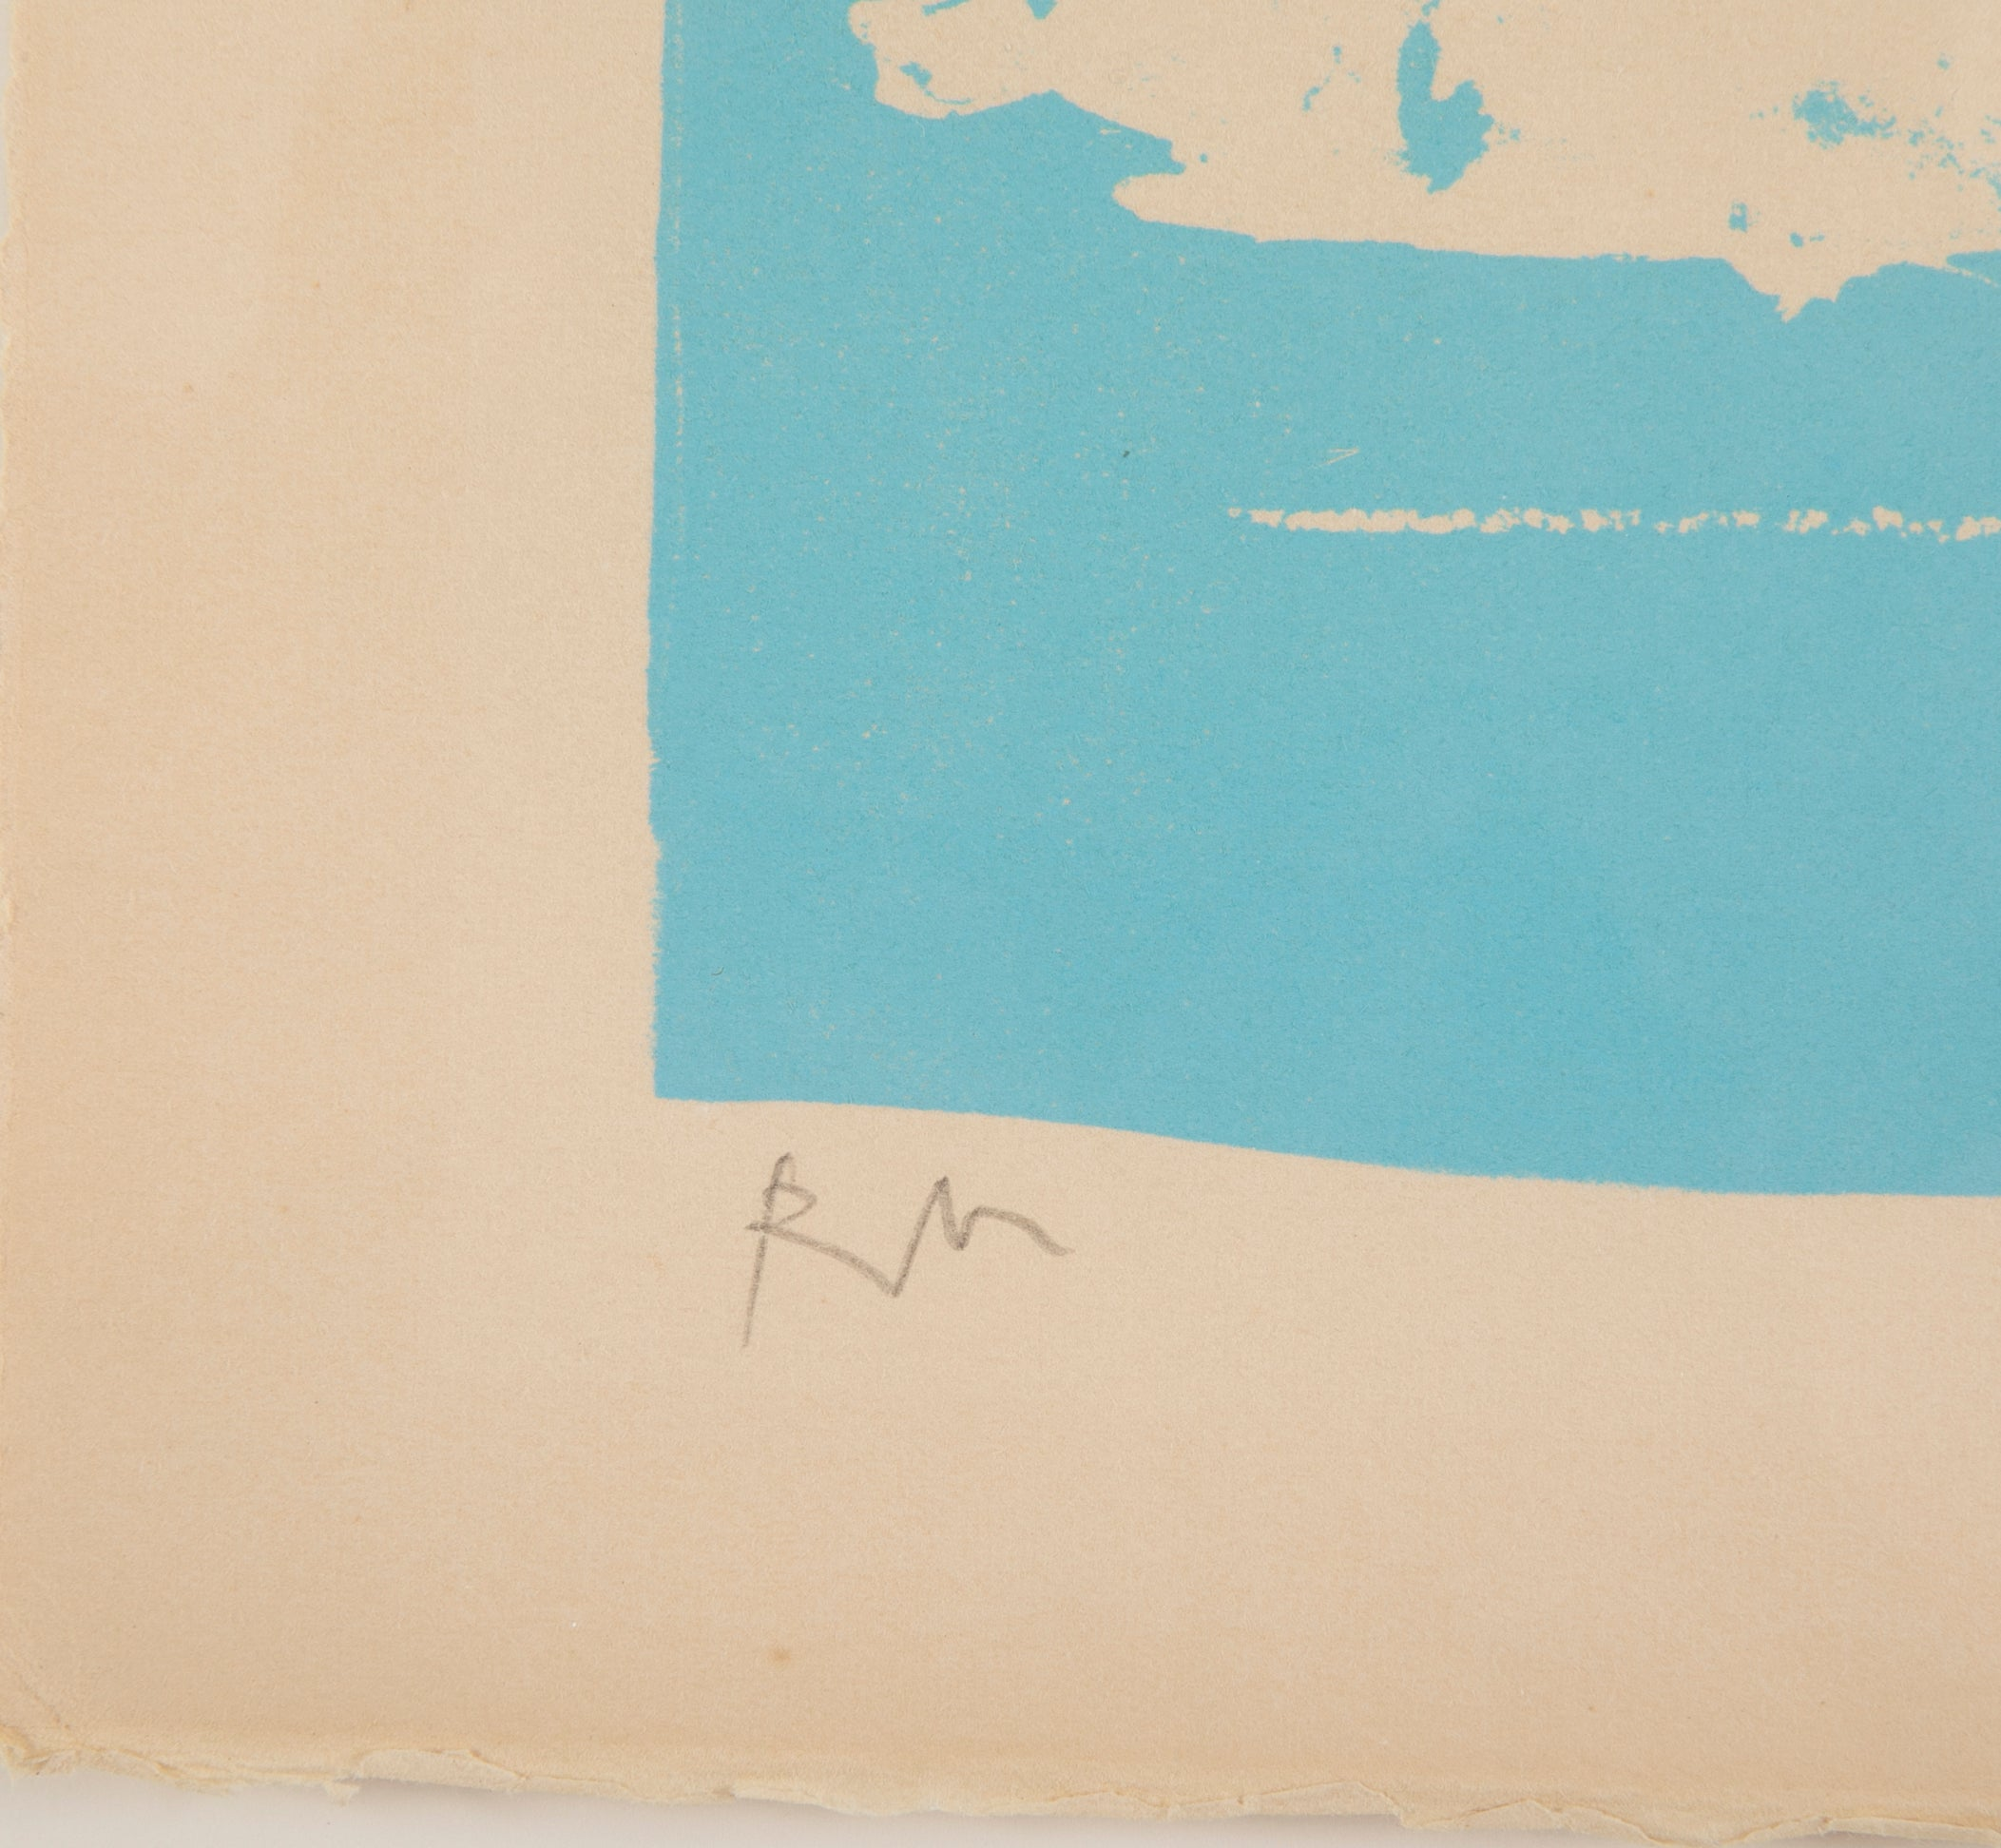 Robert Motherwell Lithograph in Blue on Buff Arches Cover Paper